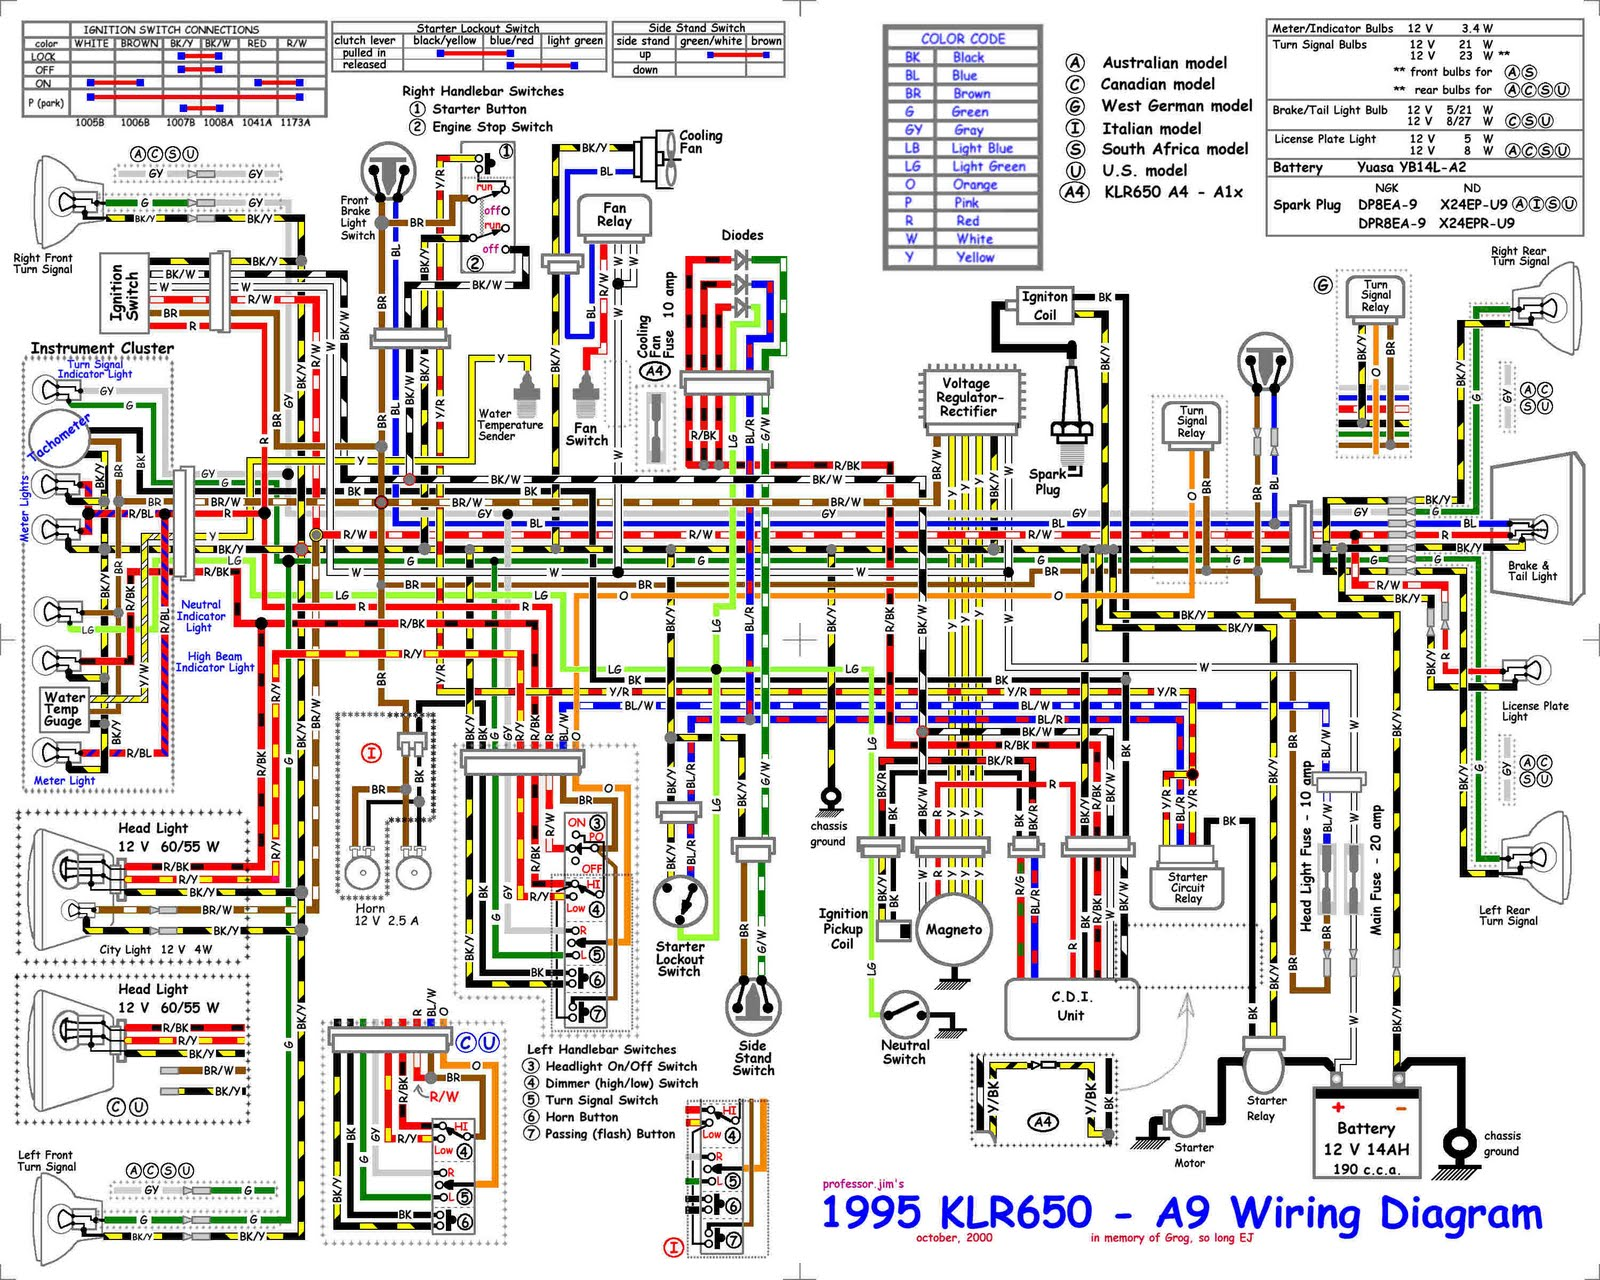 1974 monte carlo wiring diagram auto wiring diagrams premium automotive electrical wiring diagrams dodge wiring diagrams free at alyssarenee.co